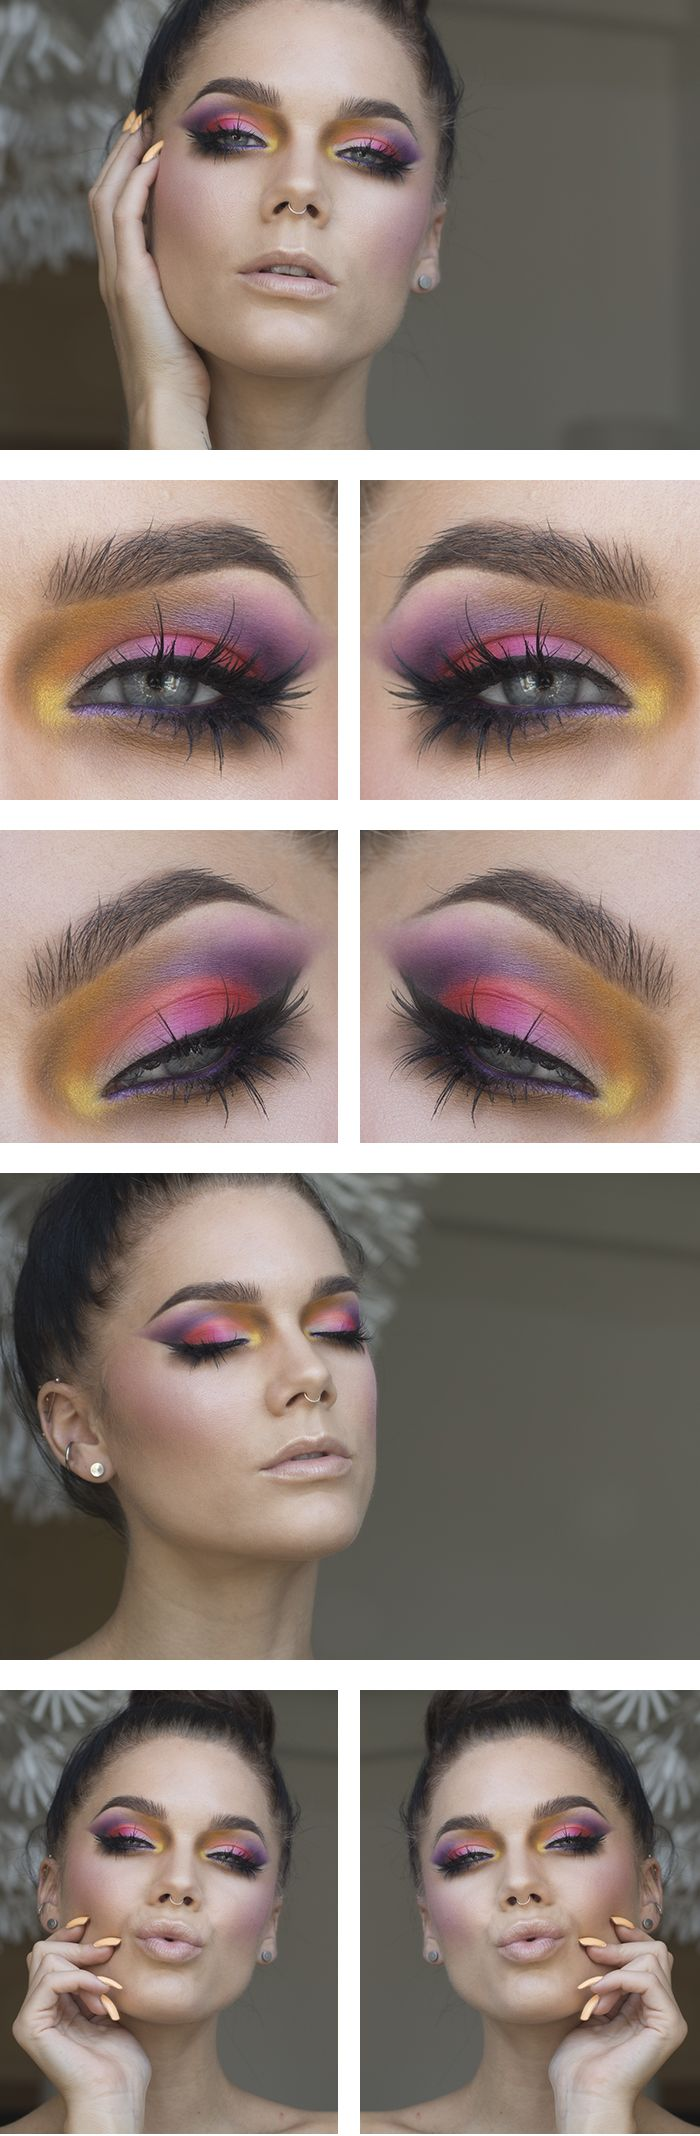 Firar det fantastiska vädret med massa färg! Jag har använt/I've used NYX HD eyeshadow base Colors from a no name palette (some kind of 88-palette) MAC pearlglide intense eyeliner Designer purple Loreal Super liner perfect slim Intense black House of...